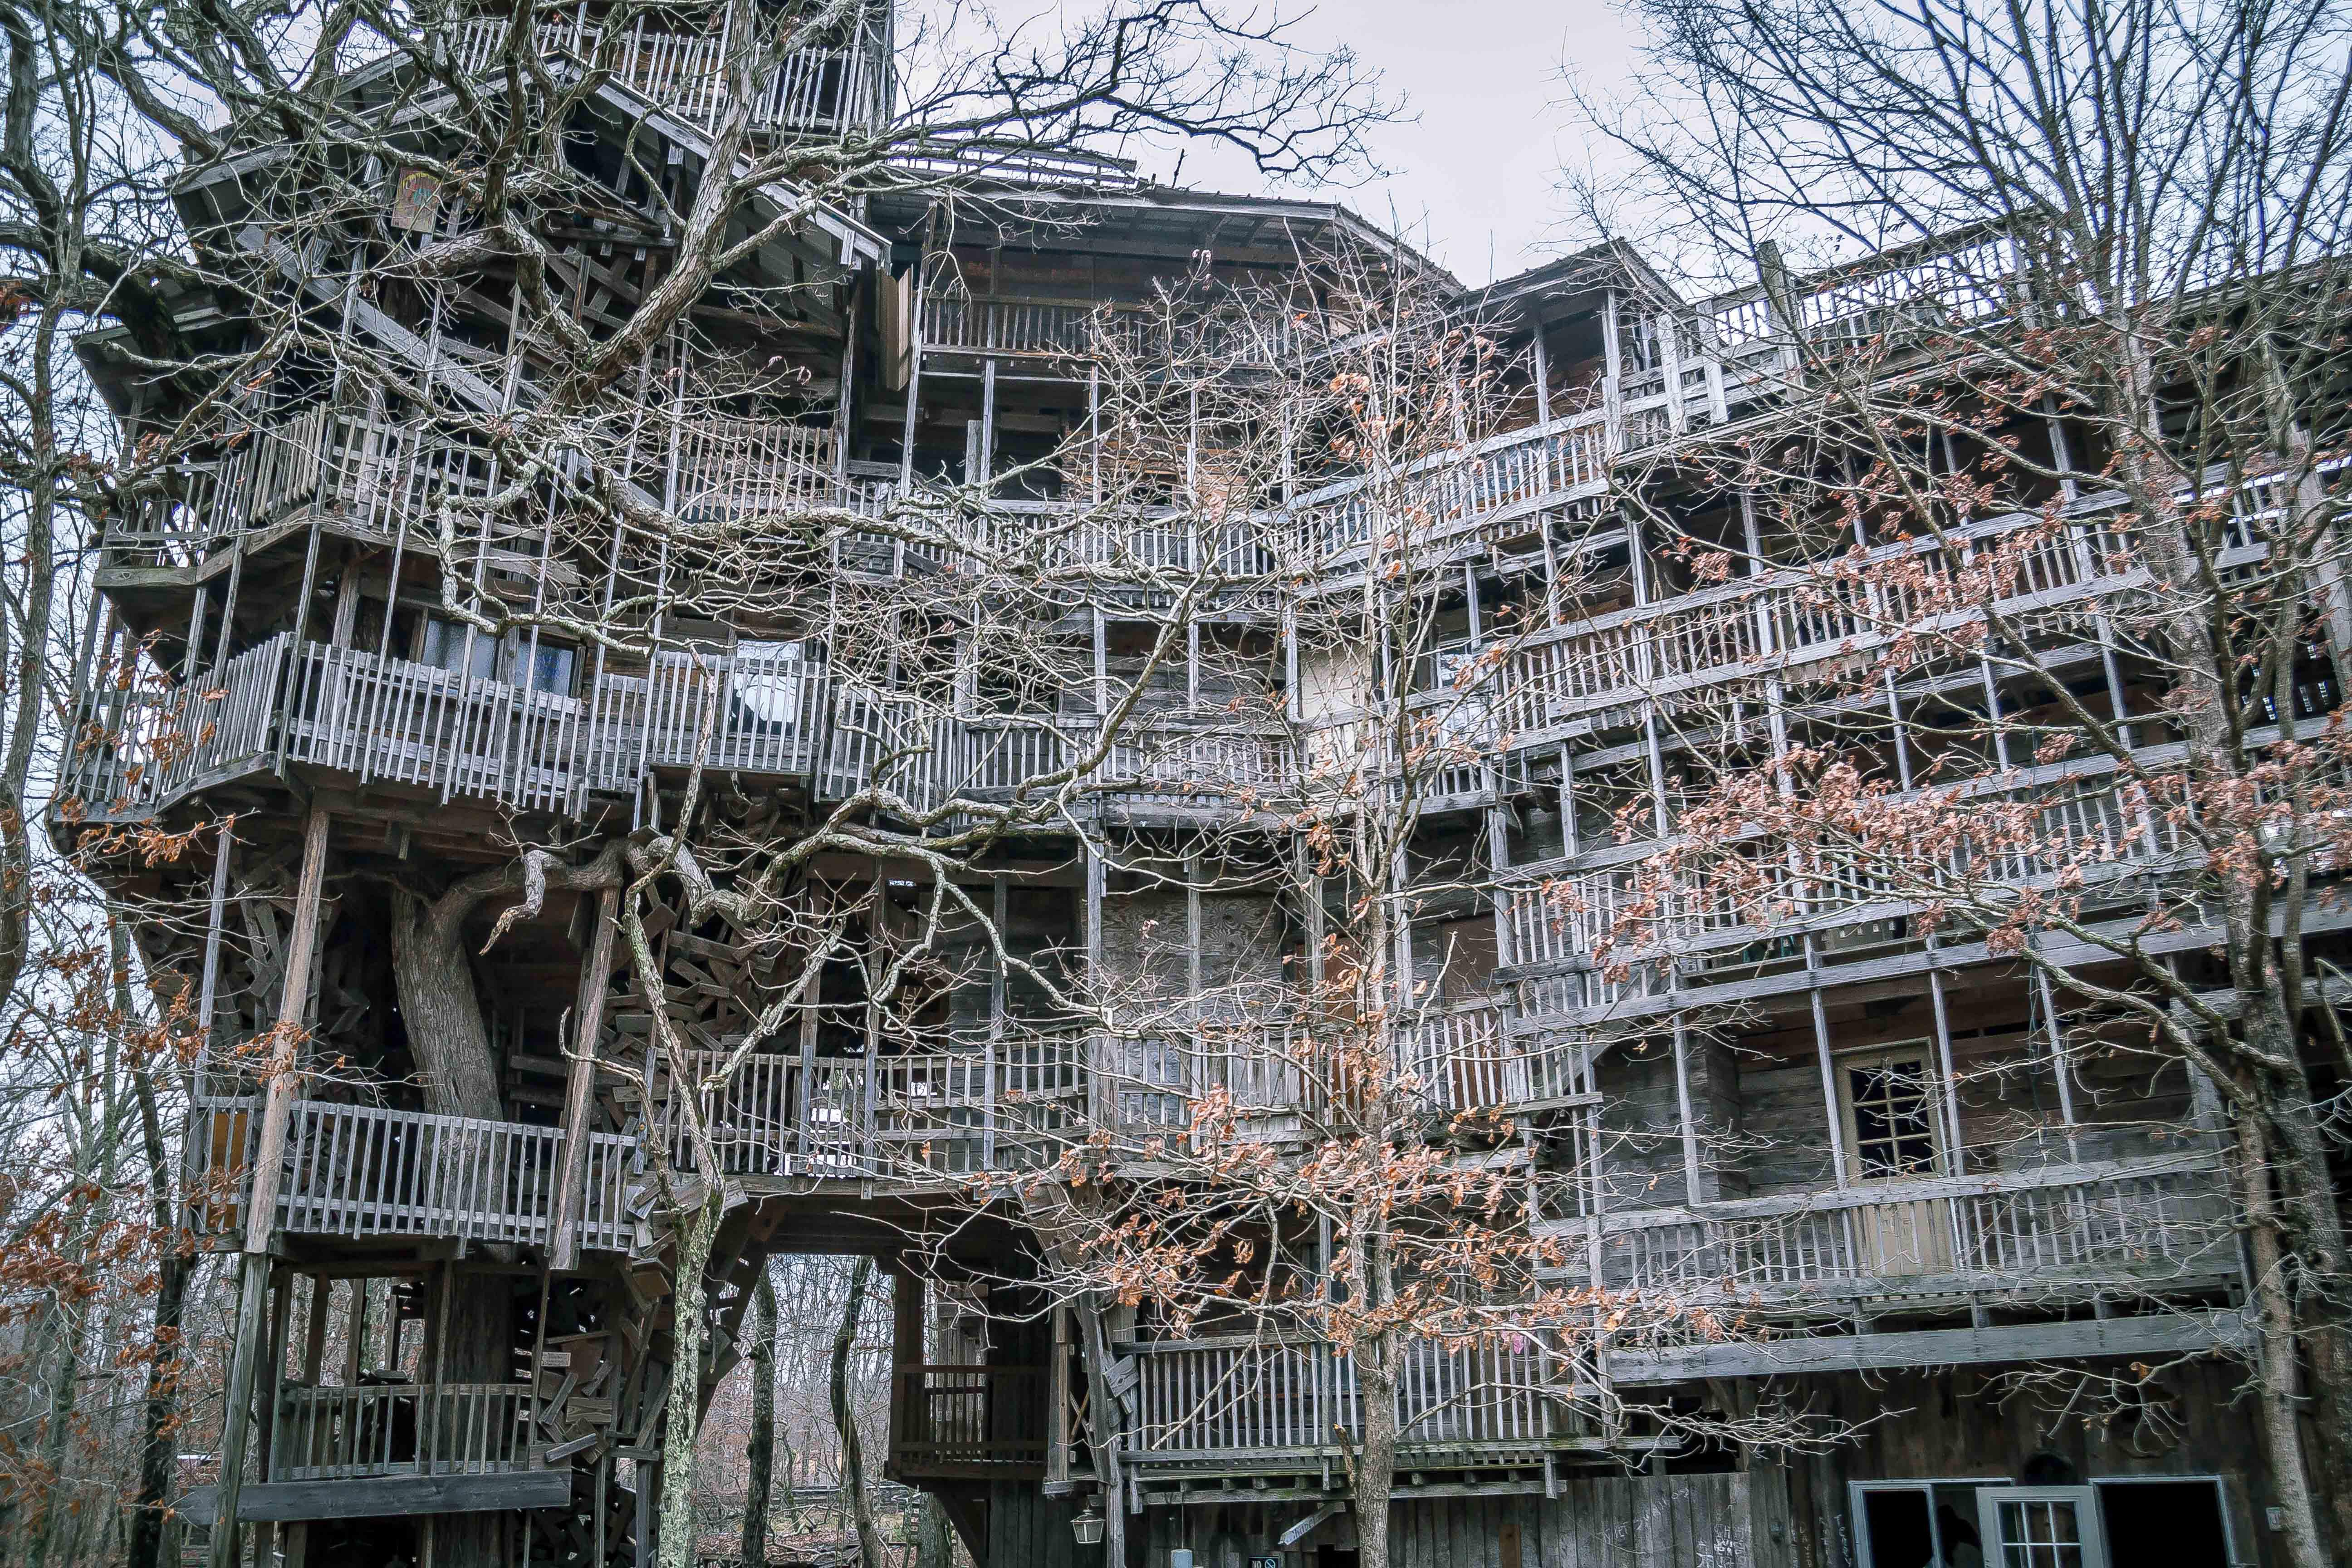 Last Night The Worlds Largest Treehouse Burned Down I Spent My Teenage Years Playing In It And Snapped This Photo In 2015 Pics